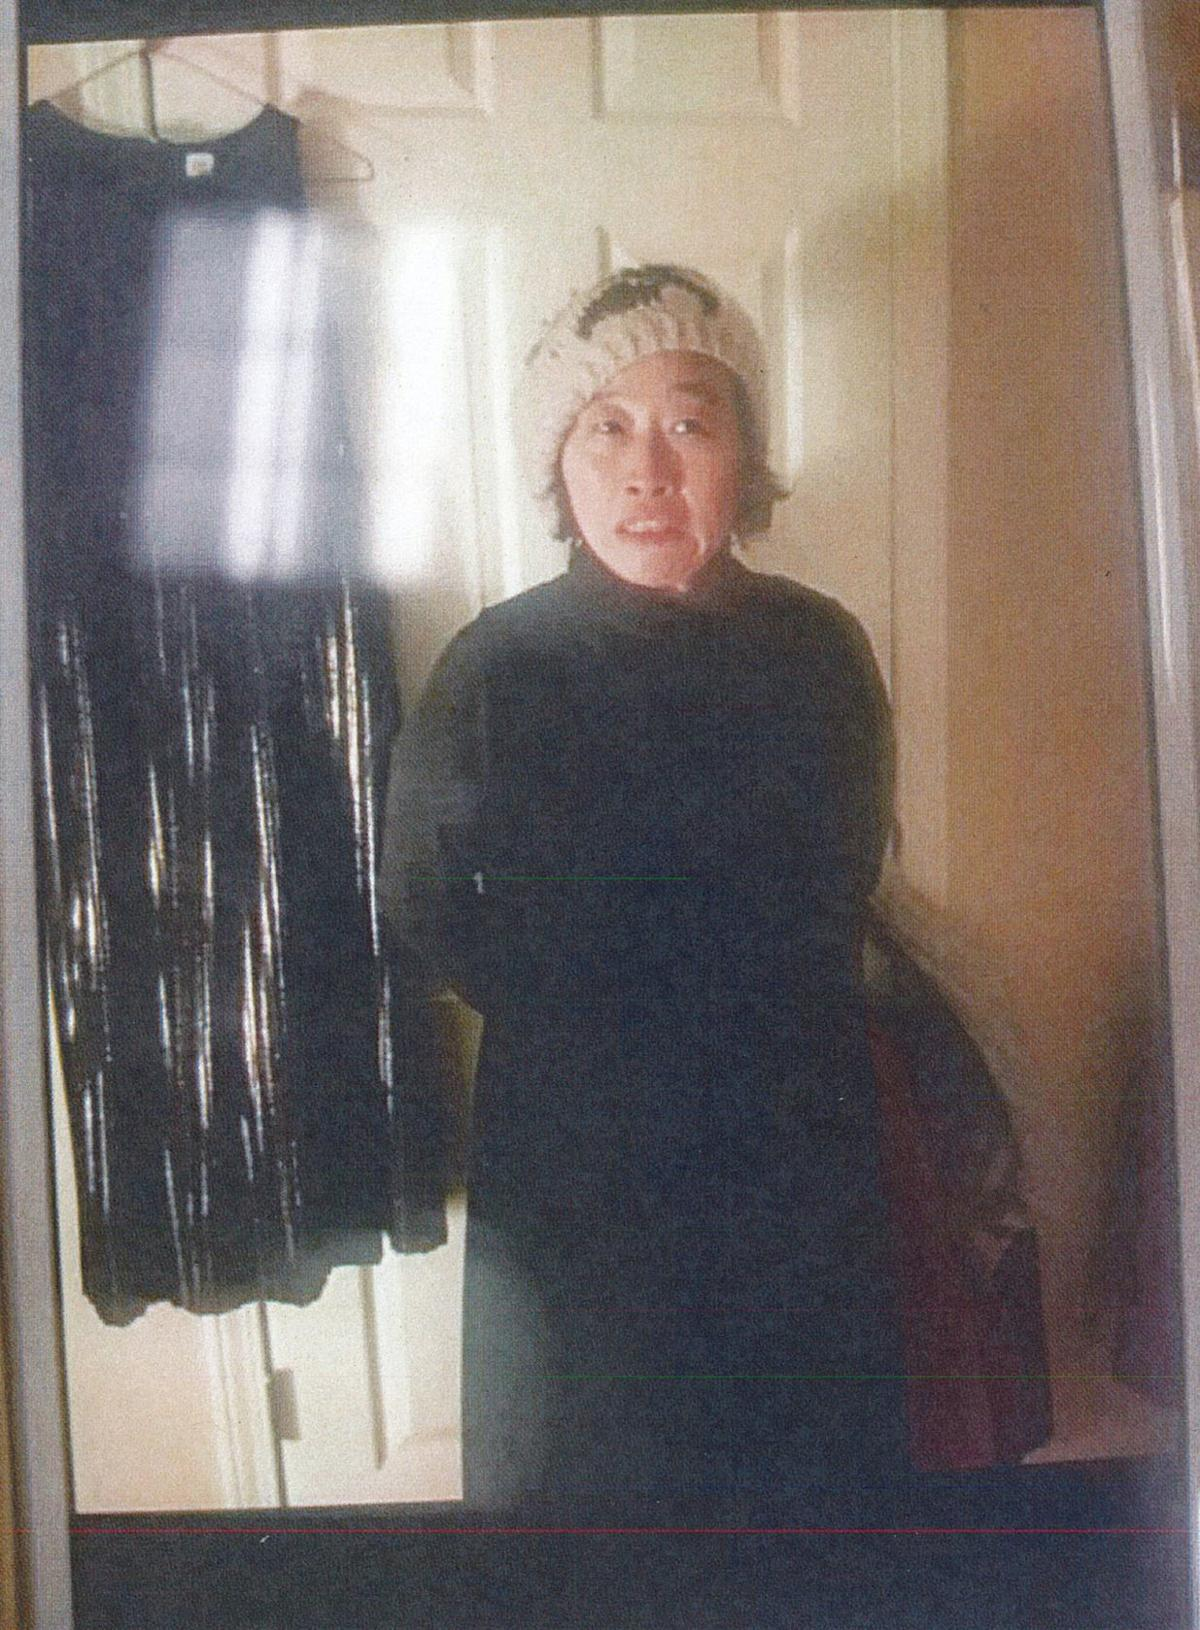 Watchung Police seek missing and endangered person